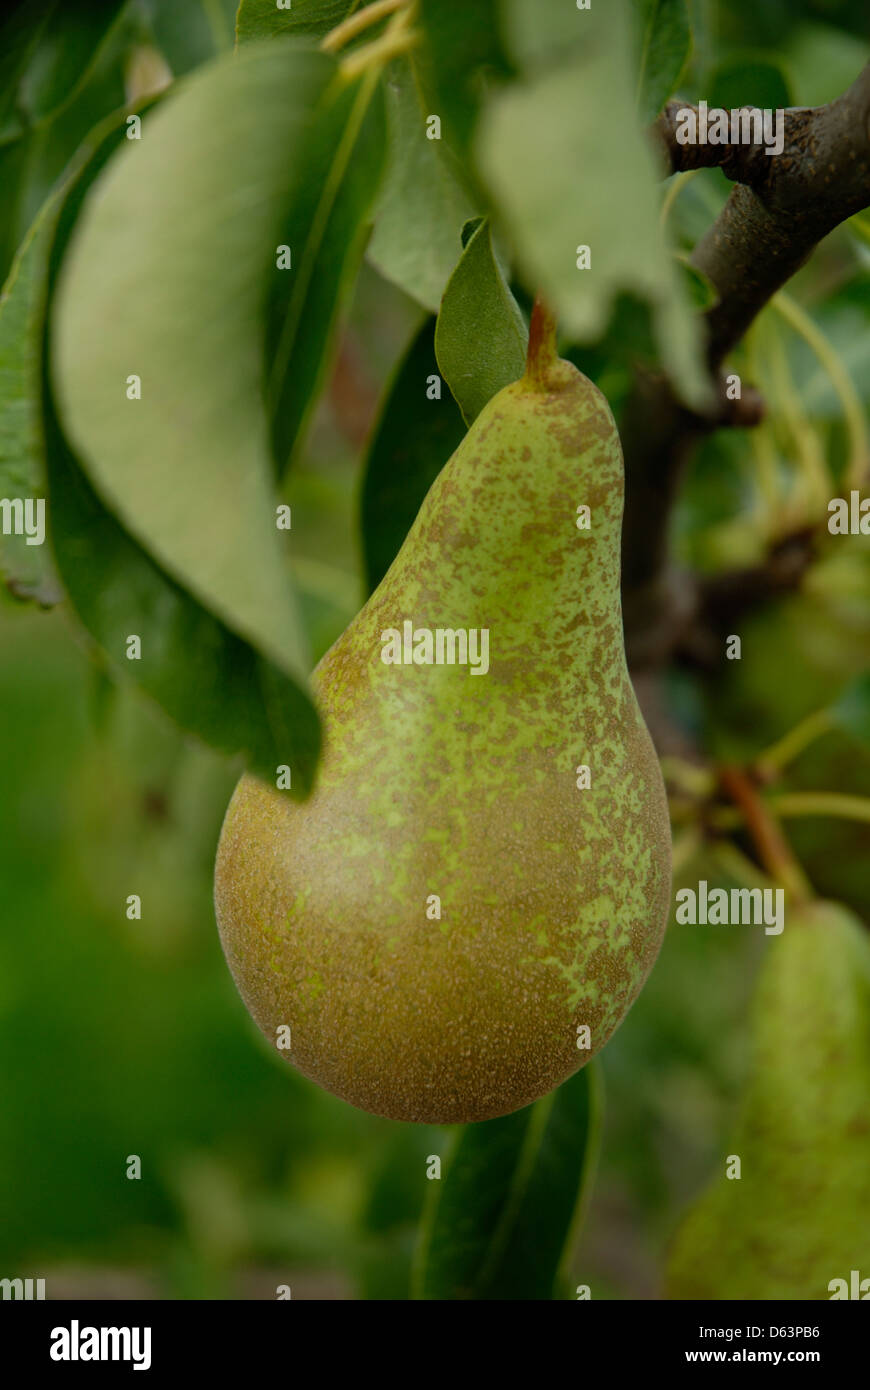 Pear growing on trees in Kent, England, Britain, UK, - Stock Image